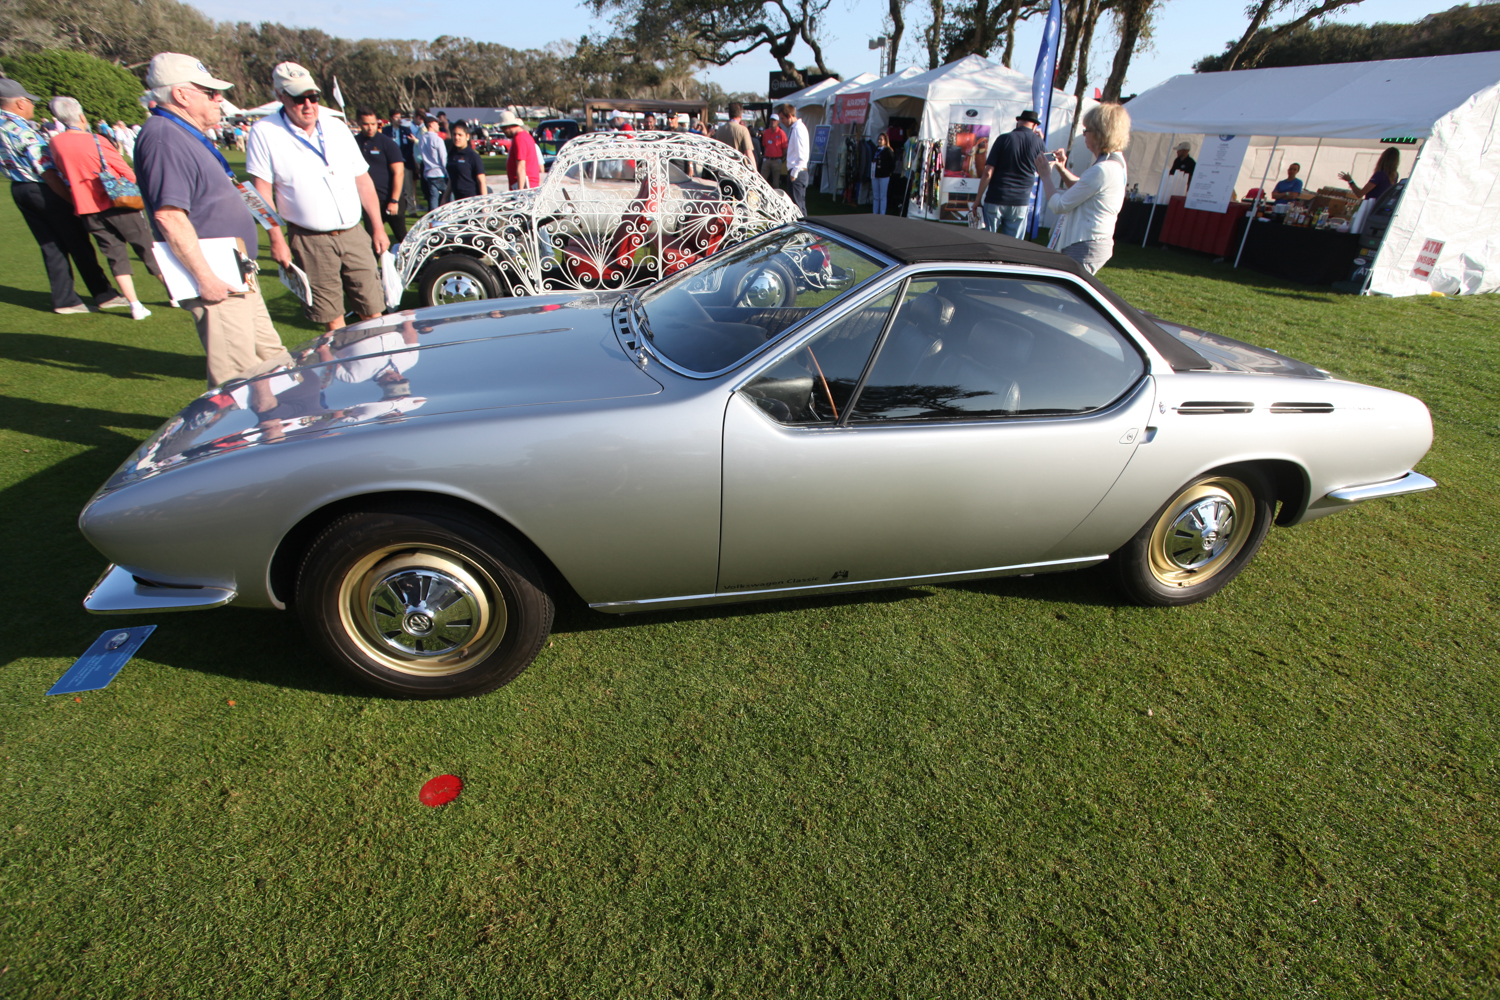 VW should have built it - 1965 Karmann Ghia Type 1 Concept Car.